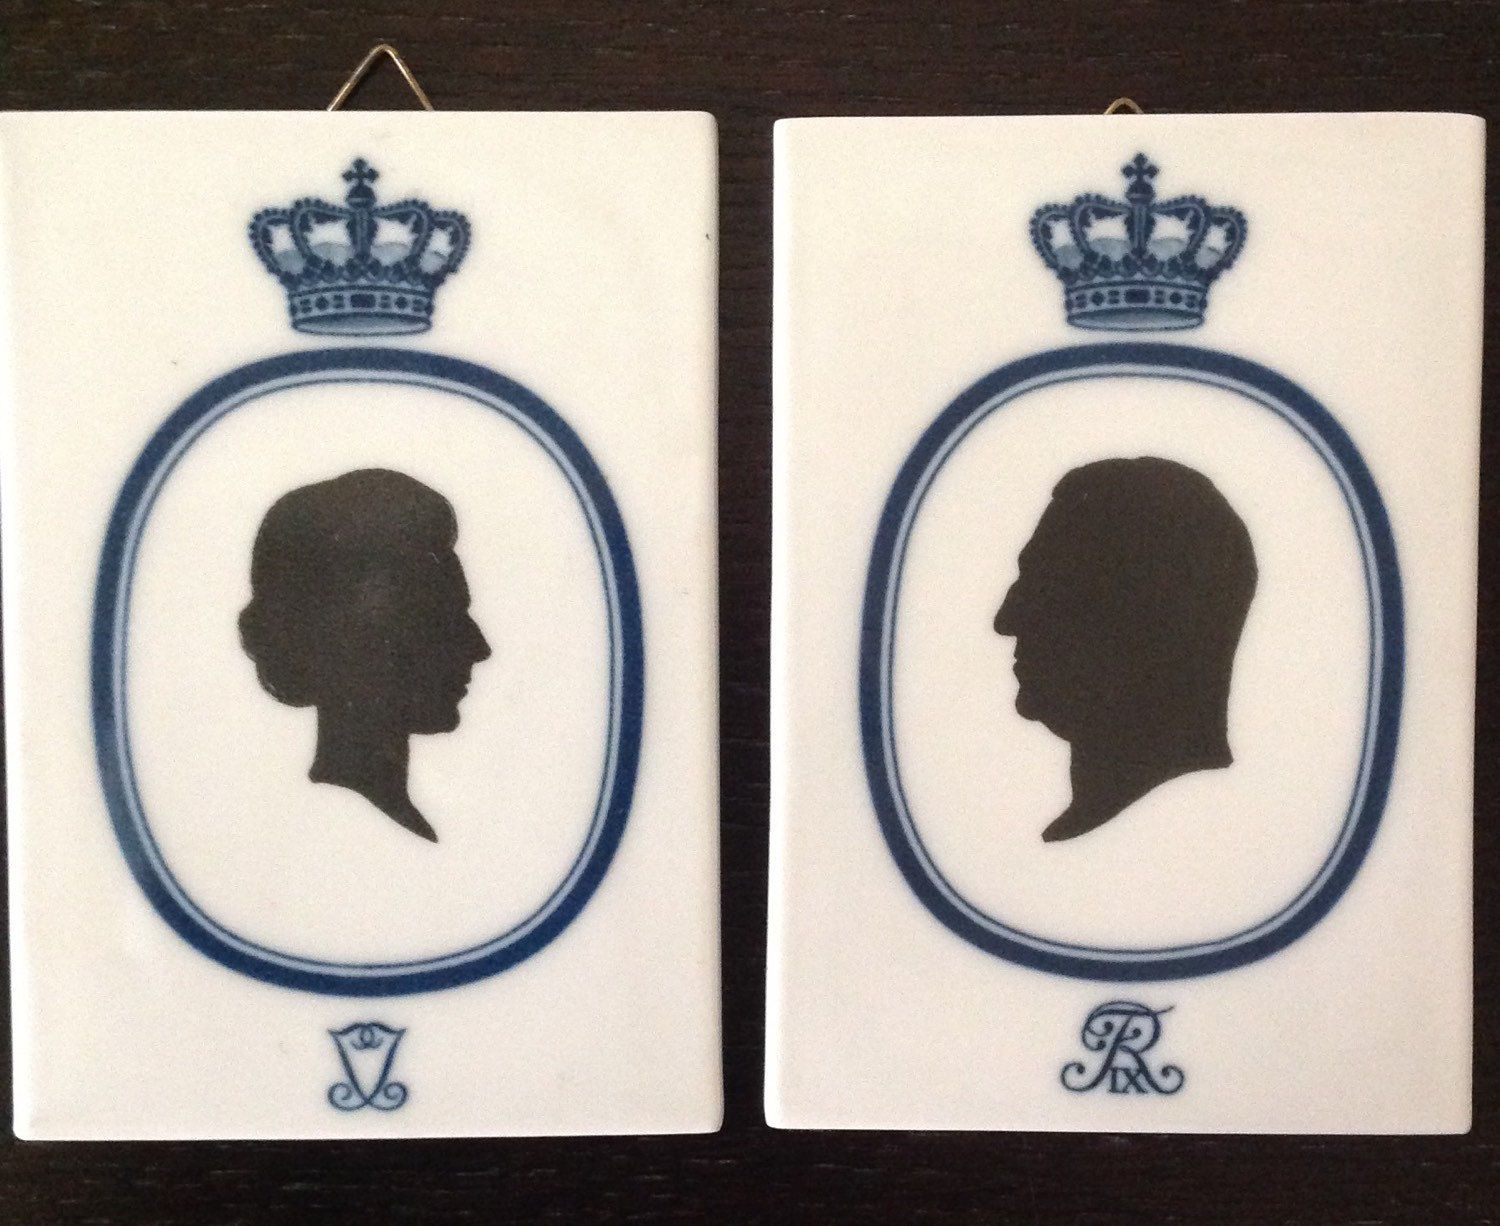 Pair of Vintage Royal Copenhagen Porcelain Wall Hangings Danish Royalty Silhouettes by aniadesigns on Etsy